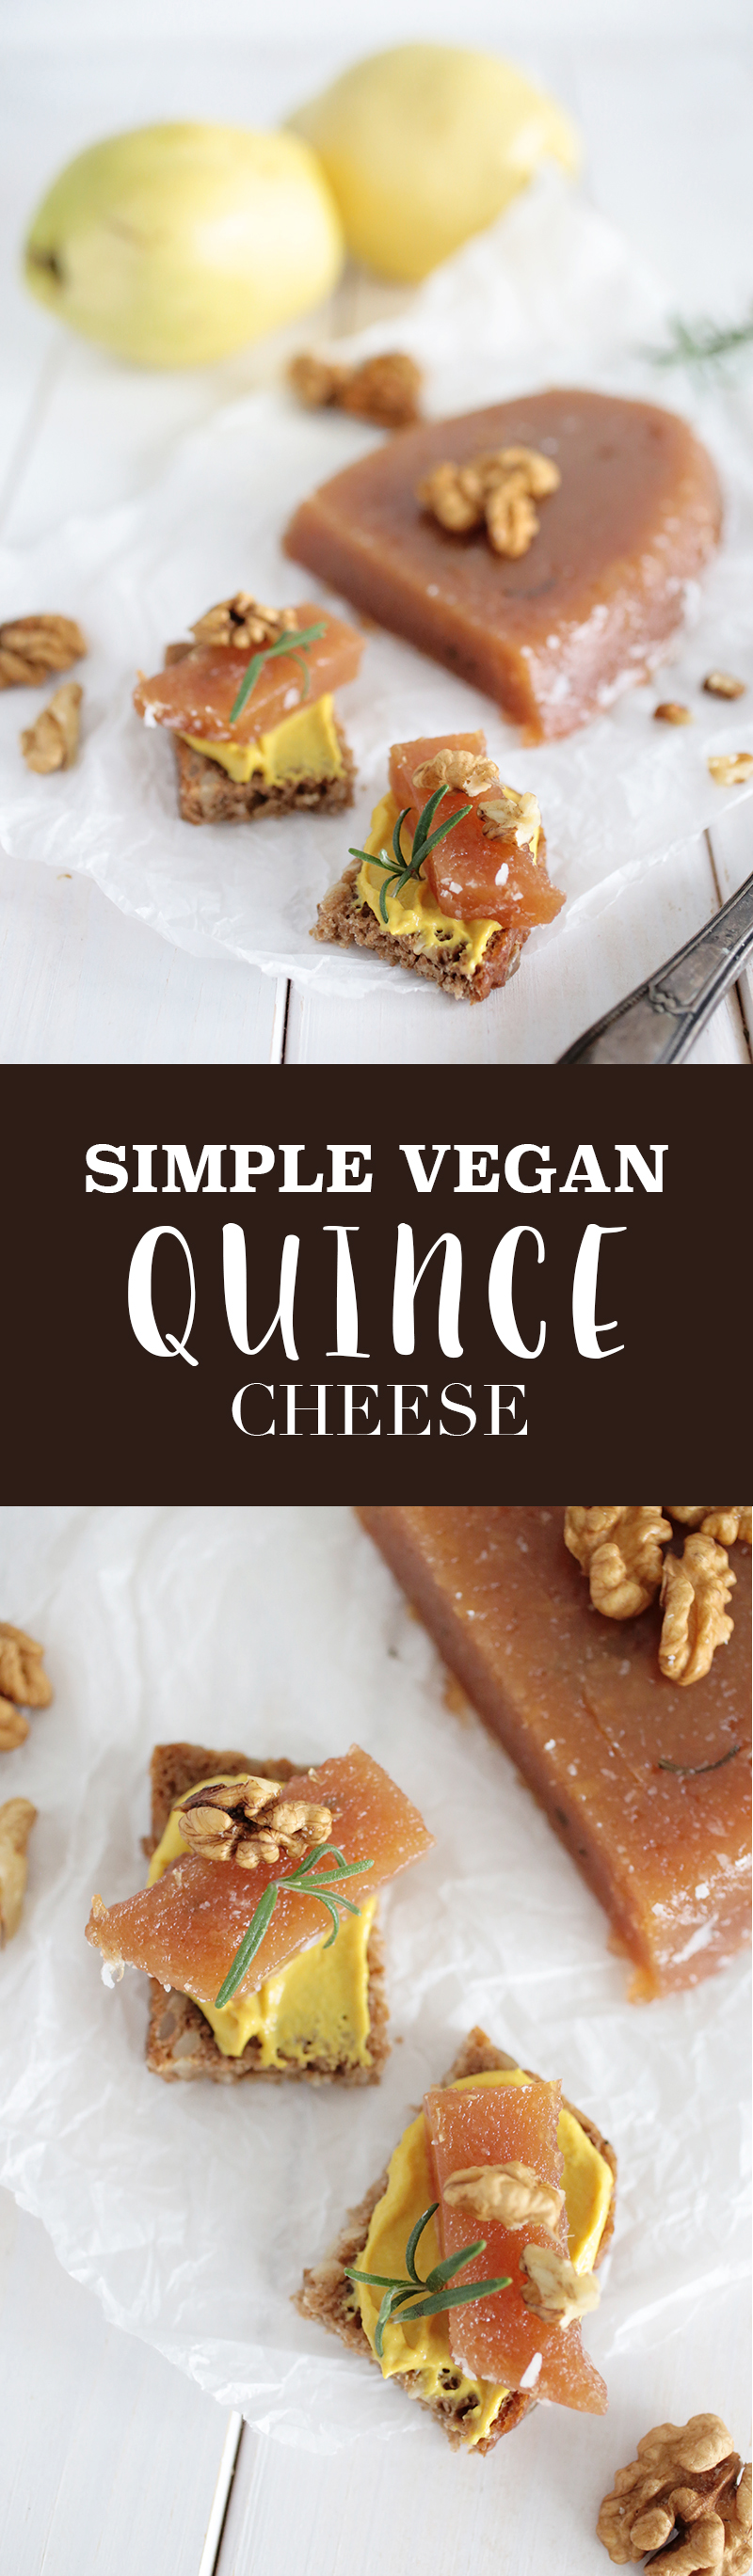 Simple Quince Cheese